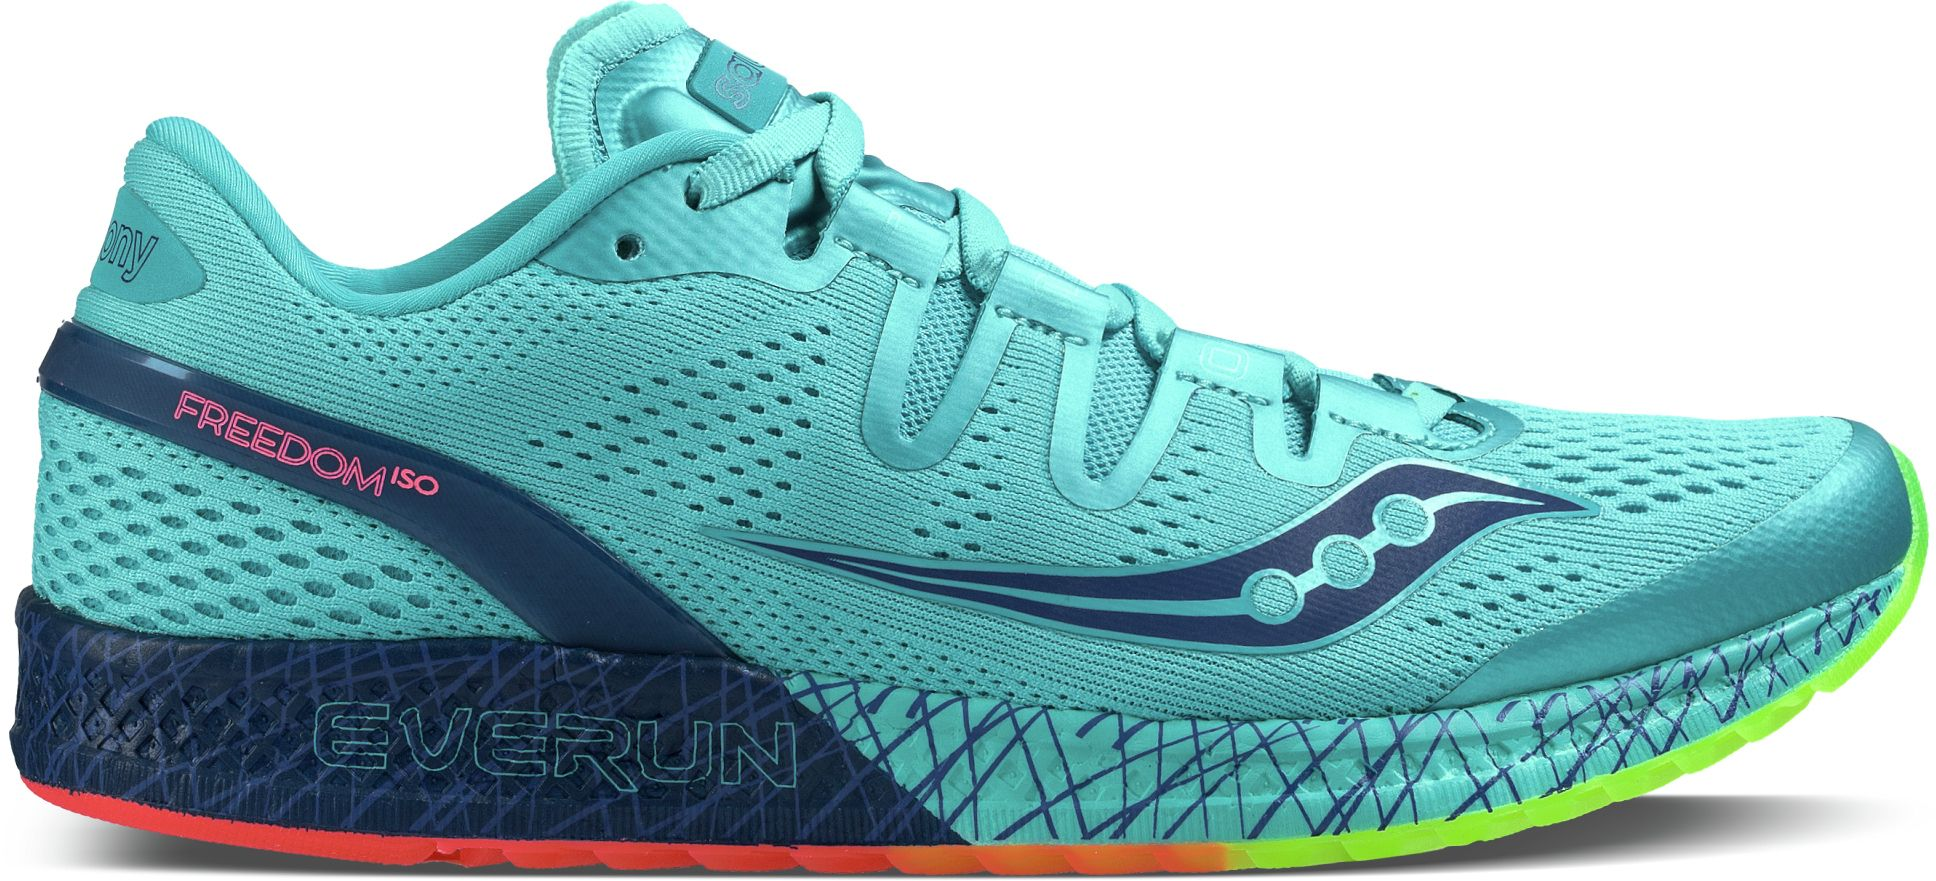 Saucony Freedom Iso Running Shoes Saucony Running Shoes Womens Shoes Wedges